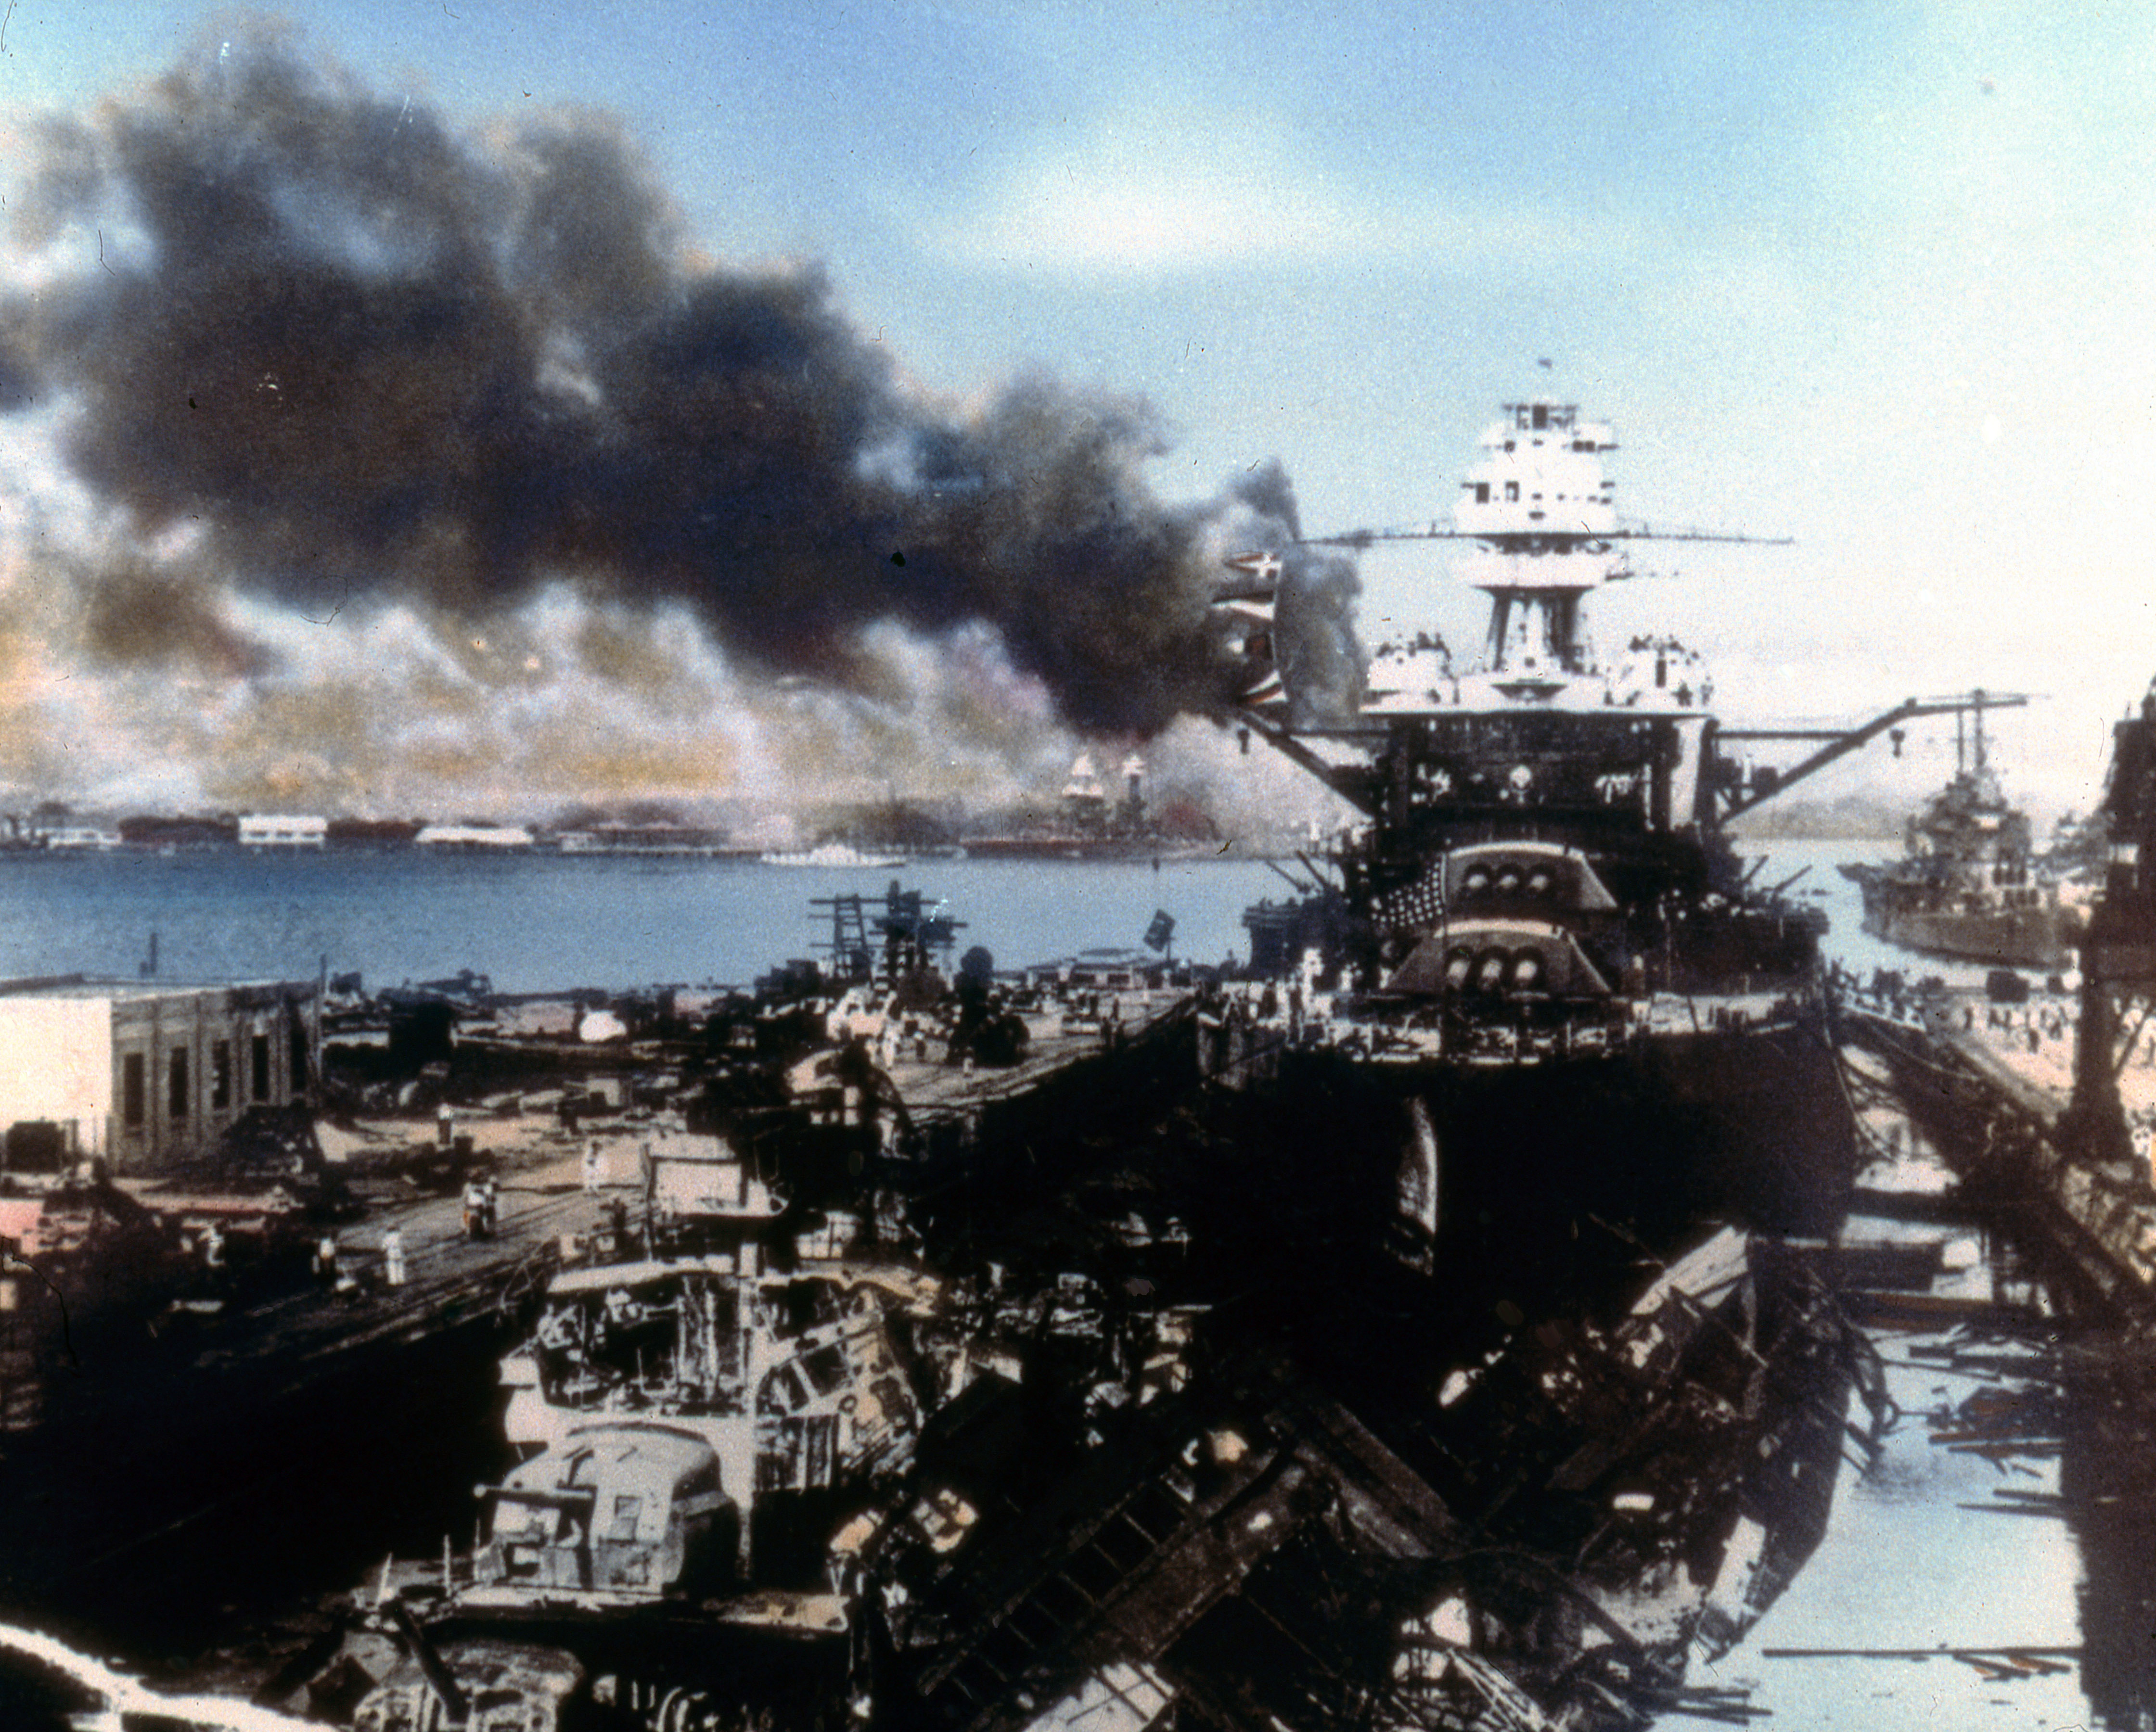 Abe won't apologize for Pearl Harbor